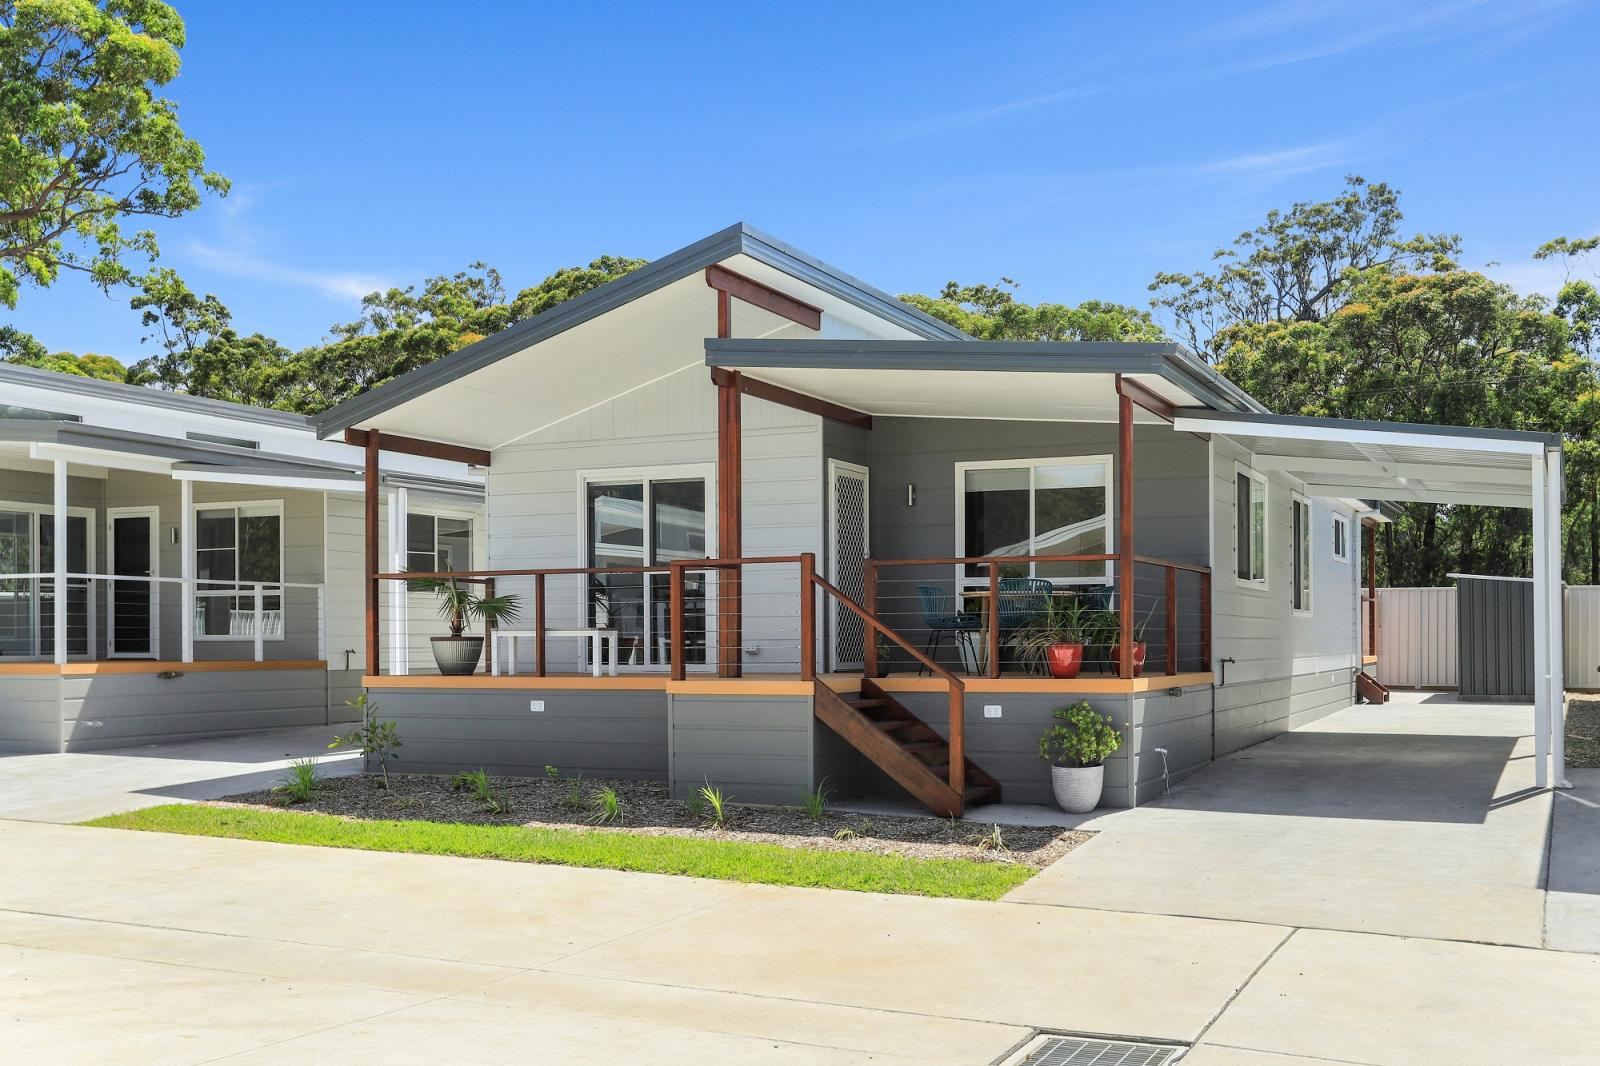 The Shore Break home design at Hometown Australia's The Dunes community at Sussex Inlet